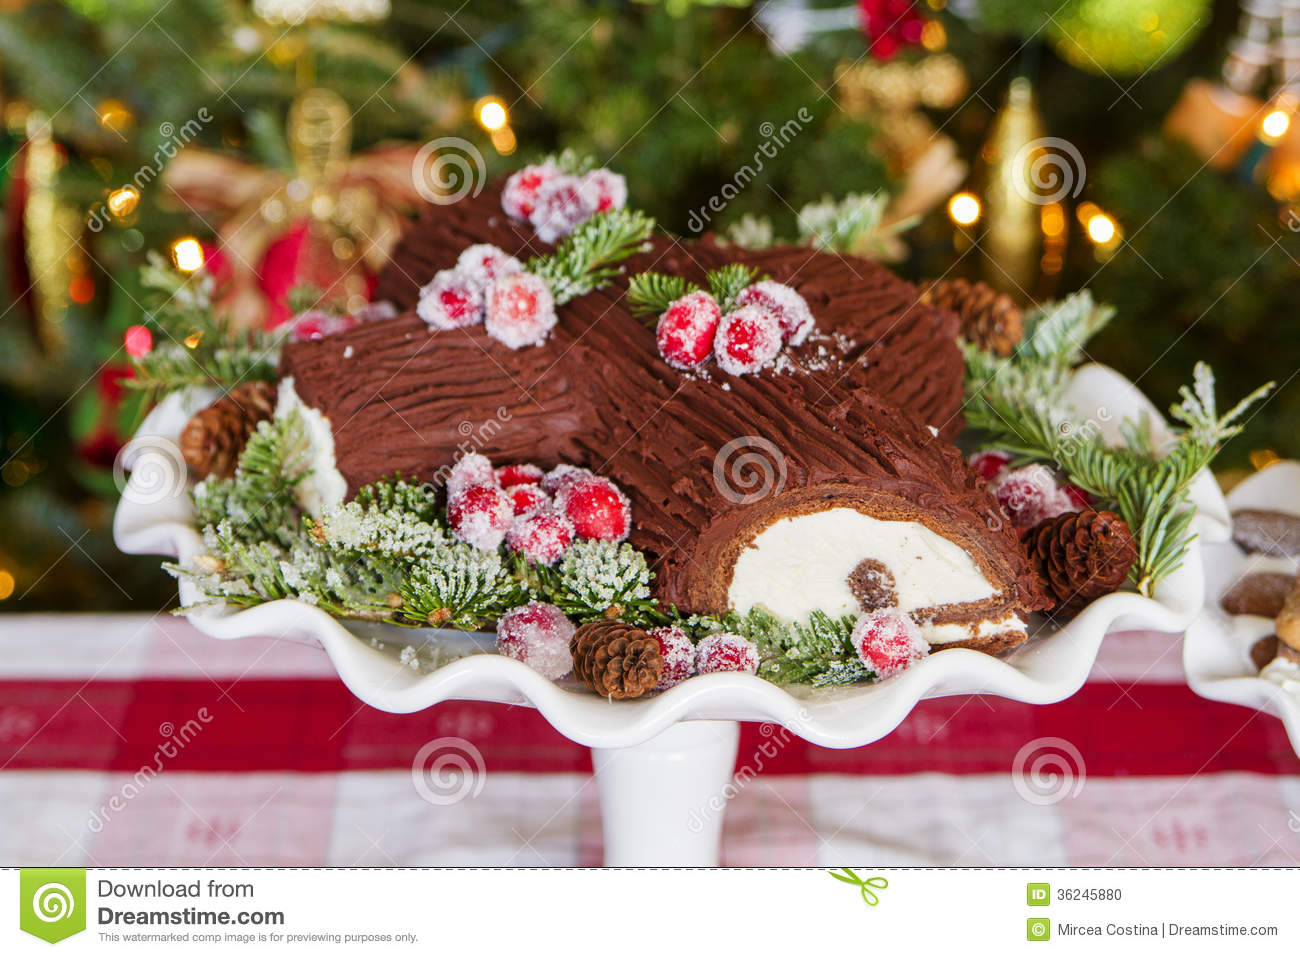 Decoration Buche De Noel Maison Décorer Blog Fr Decoration Buche De Noel